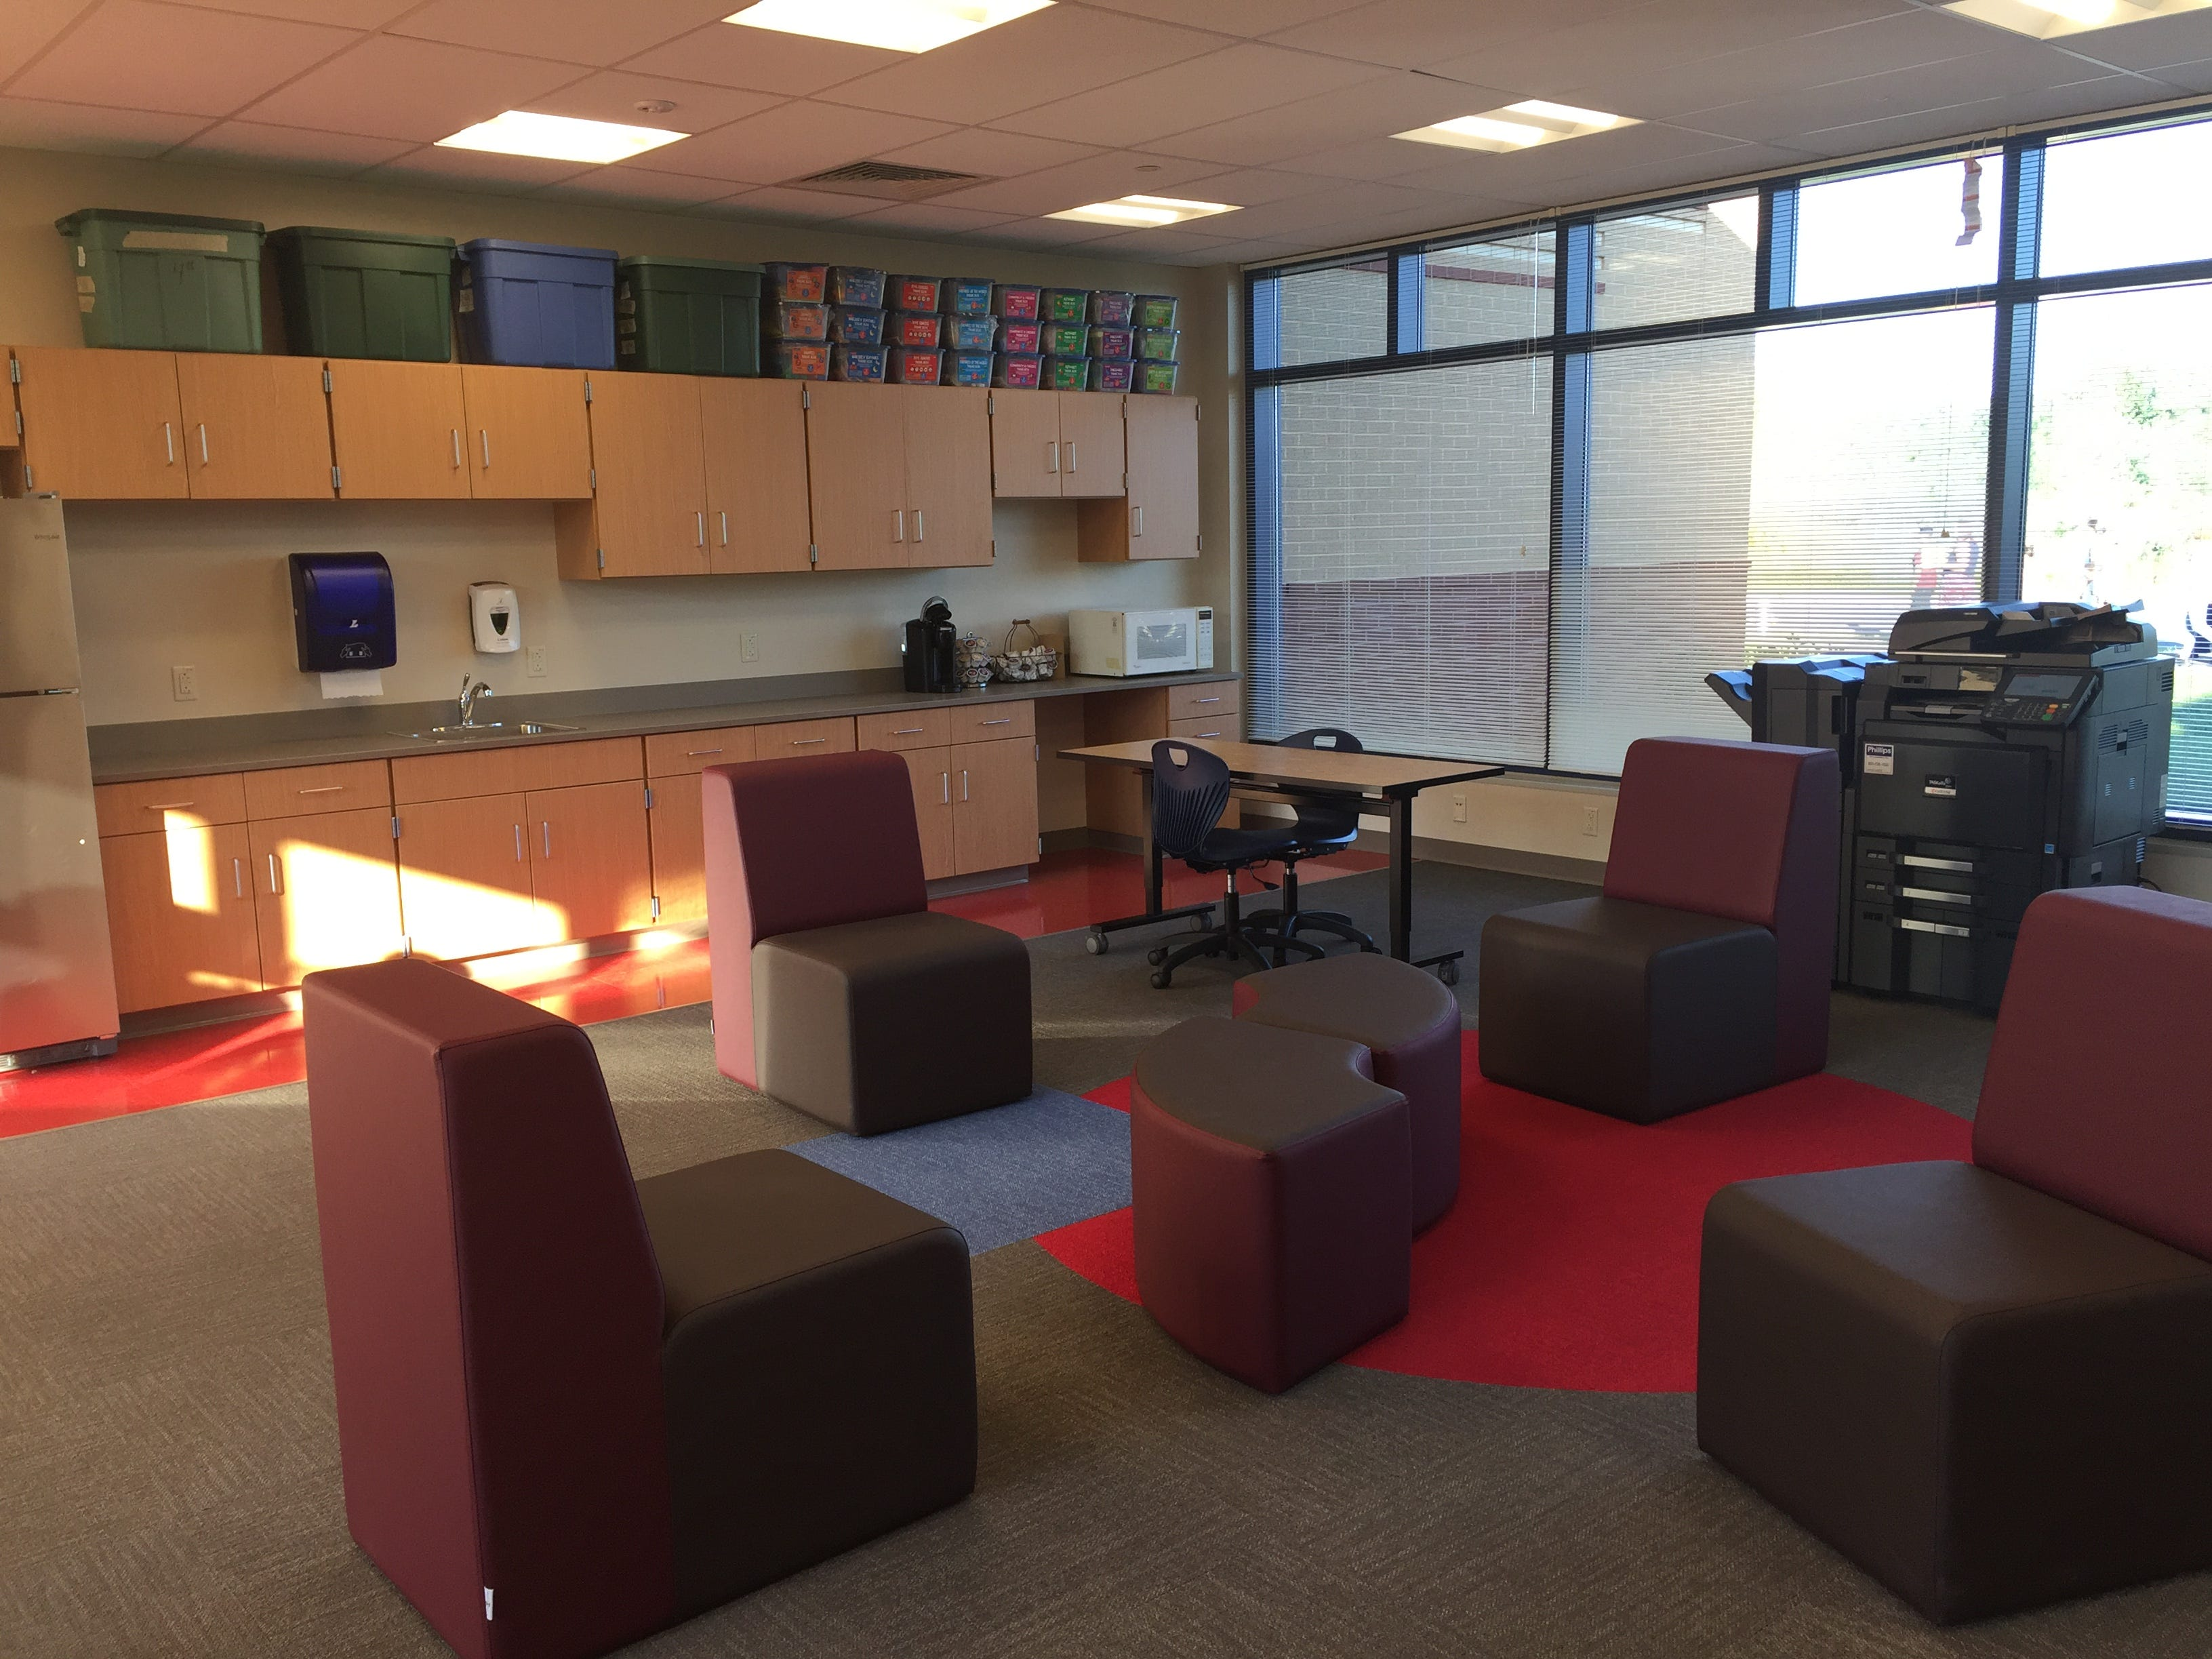 One of three work areas in the new Northwest Elementary School, each situated just off of a hallway, for teachers and small groups of students for study outside of the classroom.